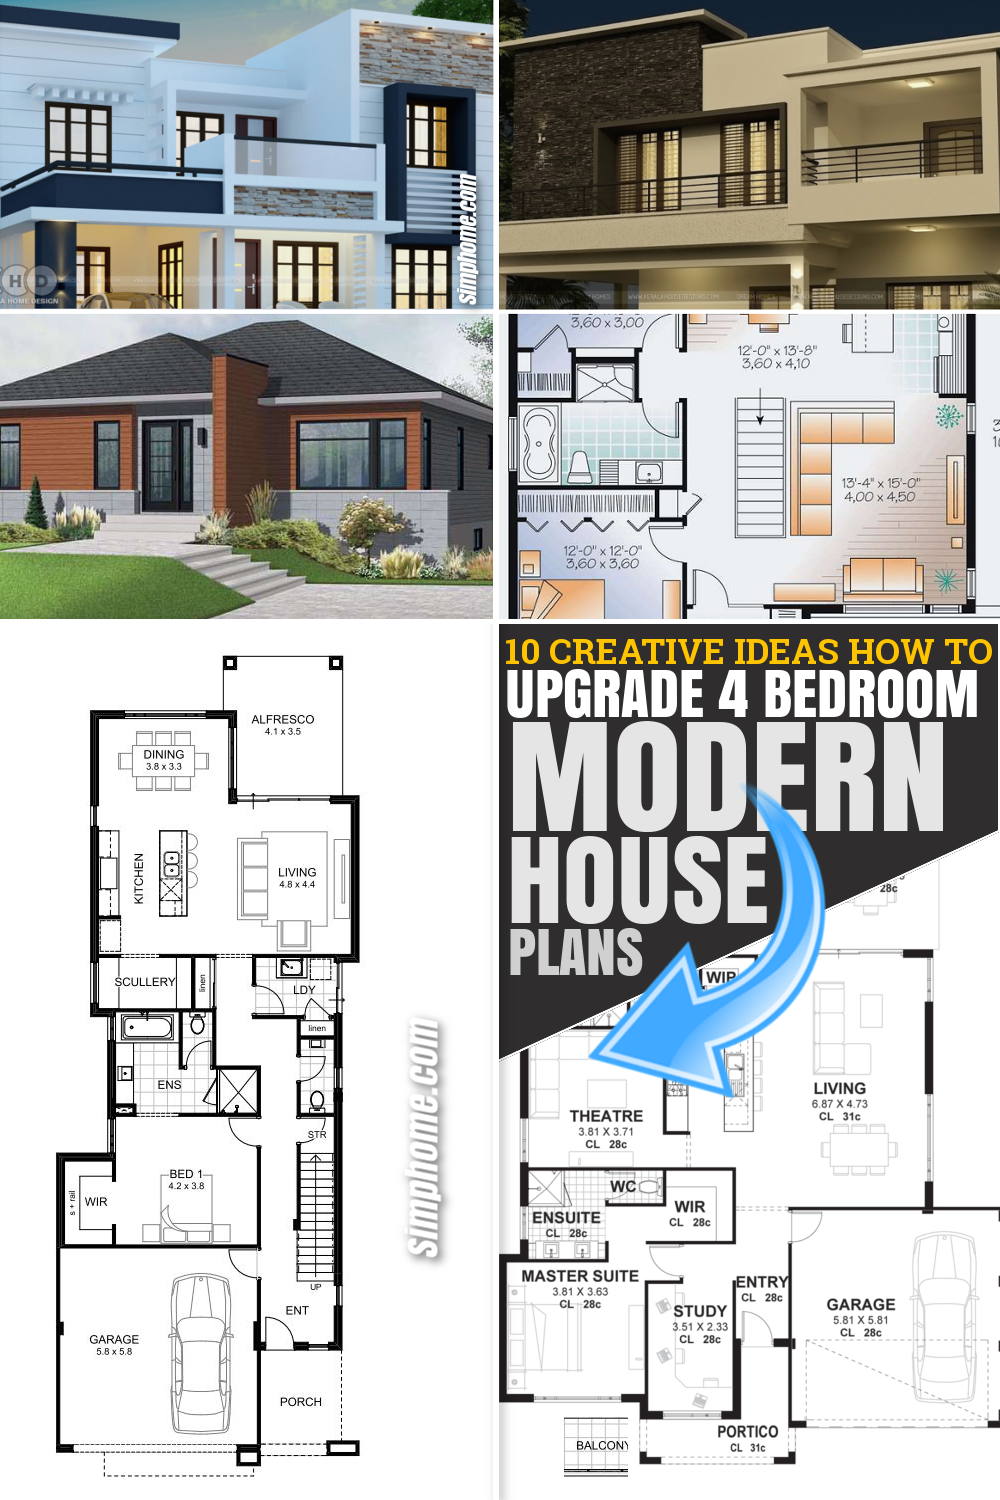 SIMPHOME.COM 12 SOME OF THE COOLEST CONCEPTS OF HOW TO UPGRADE 4 BEDROOM MODERN HOUSE PLANS Pinterest Featured